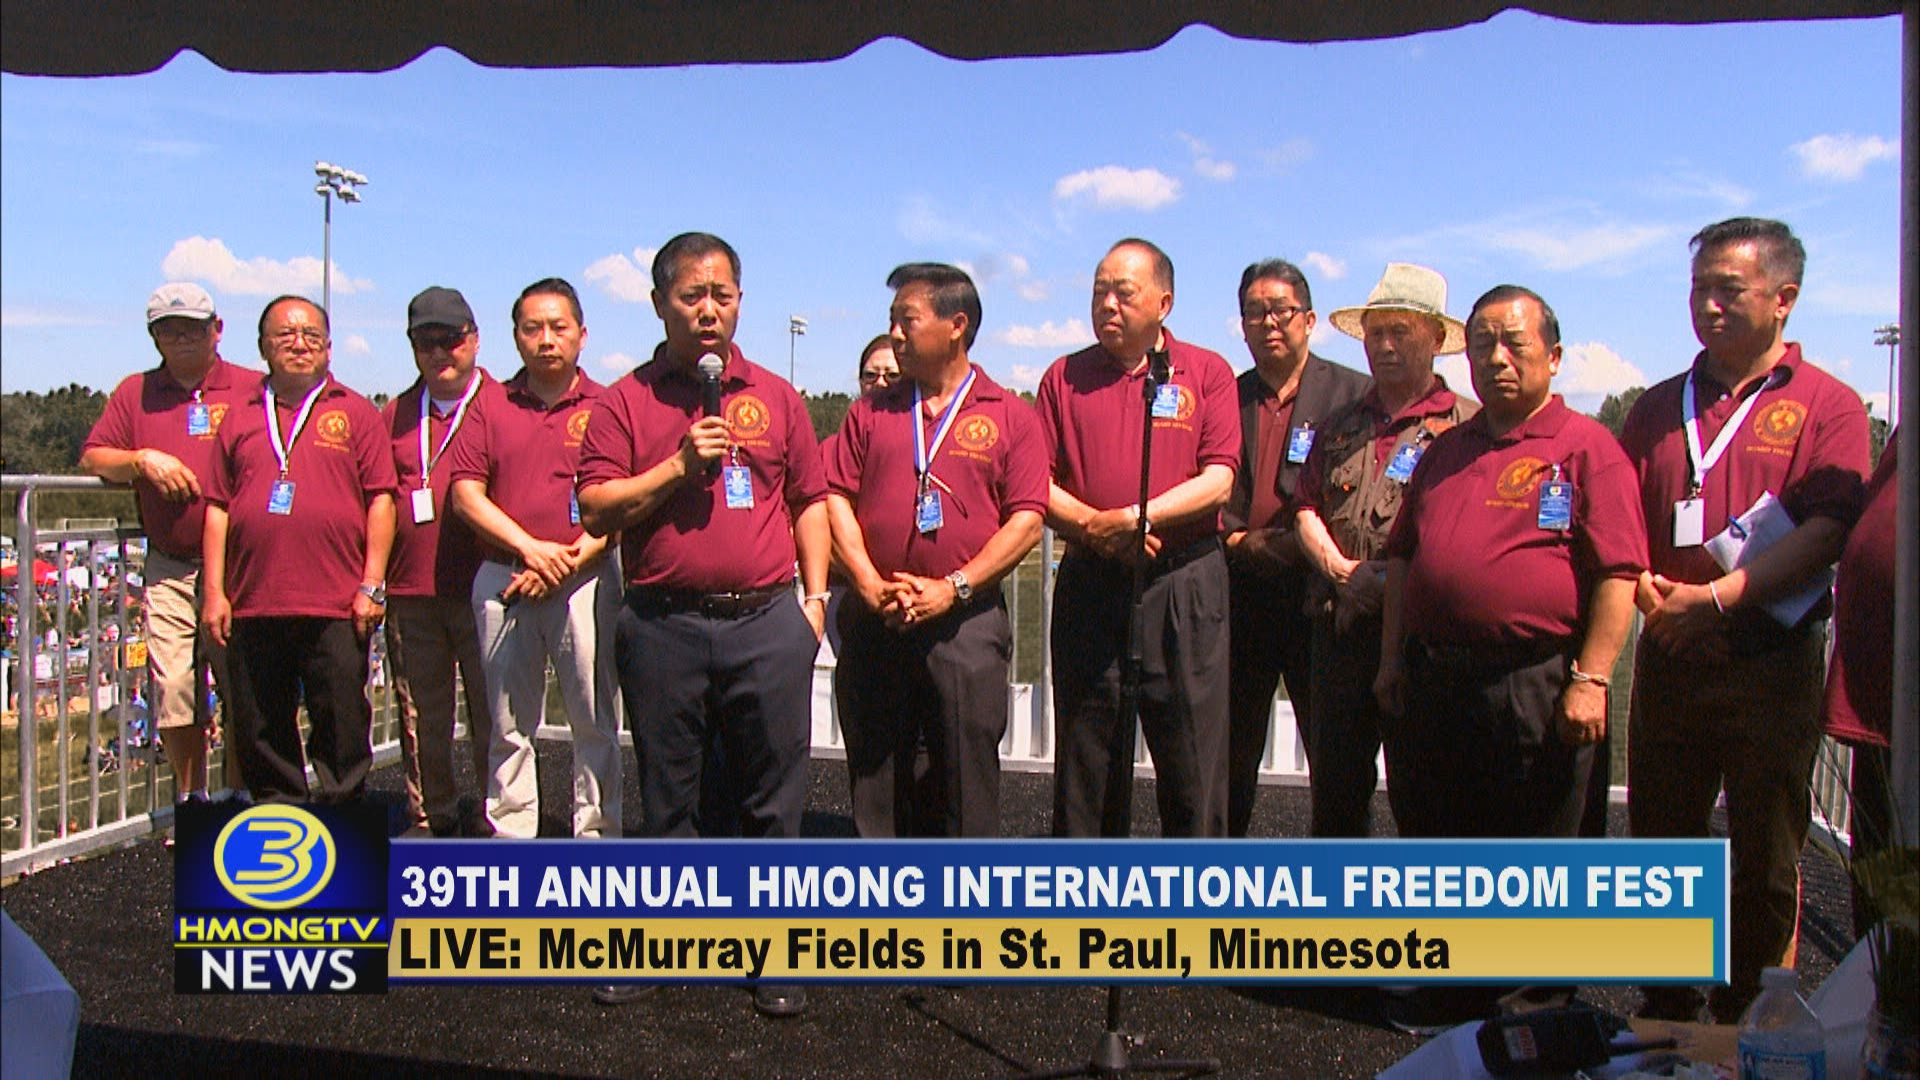 40TH HMONG INTERNATIONAL FREEDOM CELEBRATION CANCELLED DUE TO COVID-19.